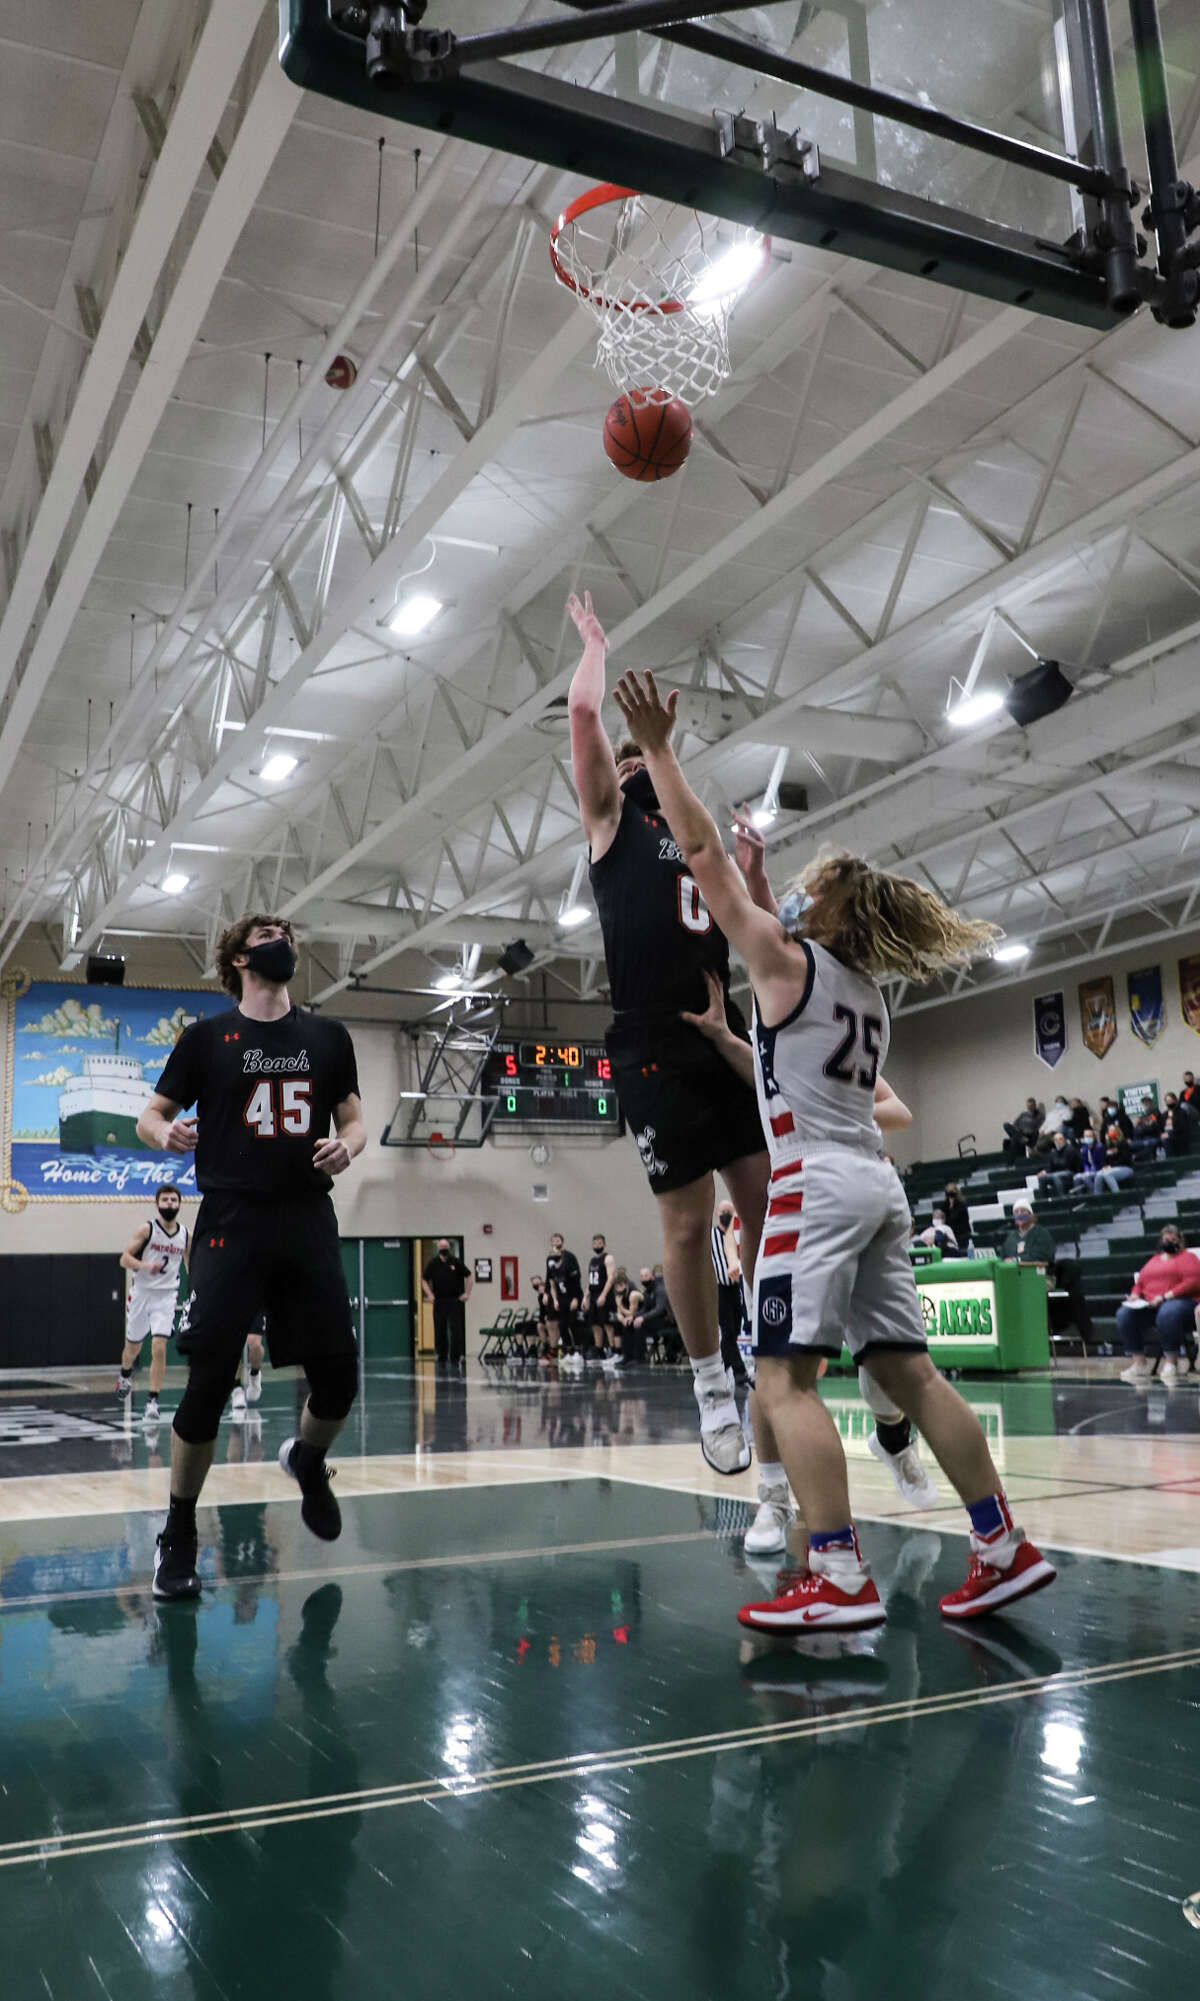 The Bad Axe boys basketball team earned a chance to play for a district championship this weekend by defeating the Cass City Red Hawks, 58-51, on Thursday night at Laker High School.